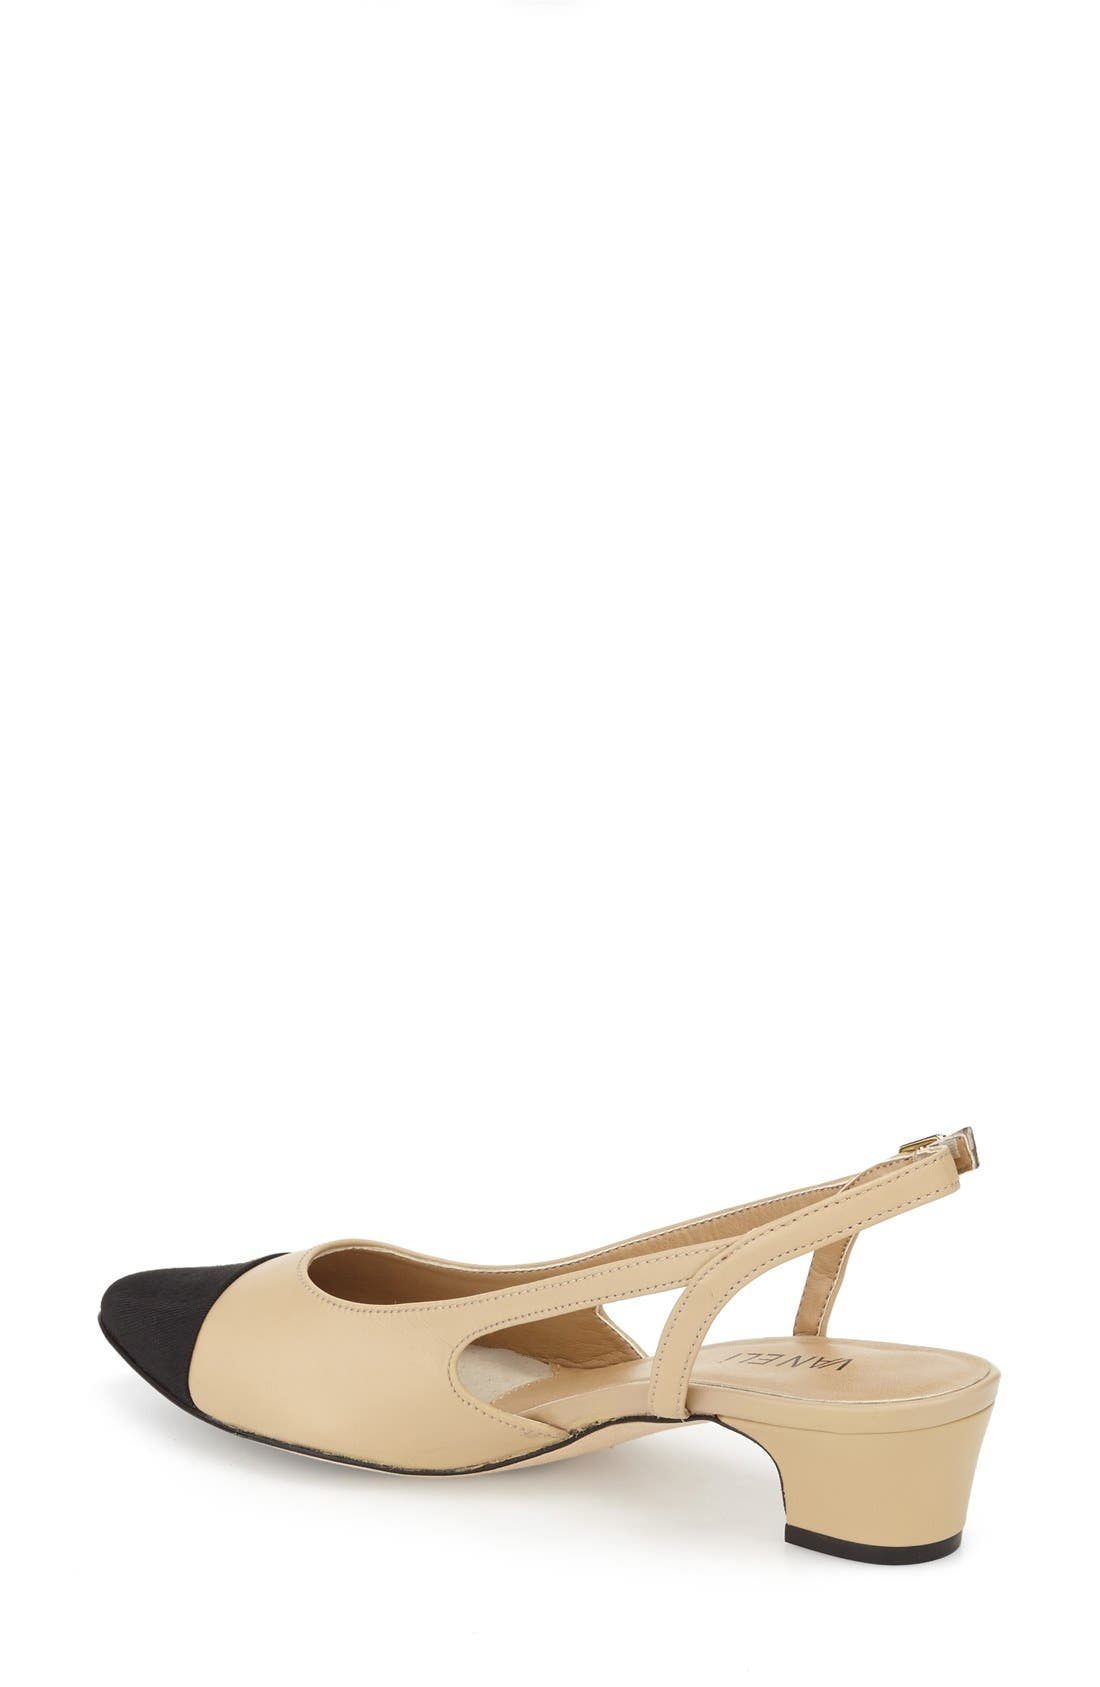 'Aliz' Slingback Pump,                             Alternate thumbnail 12, color,